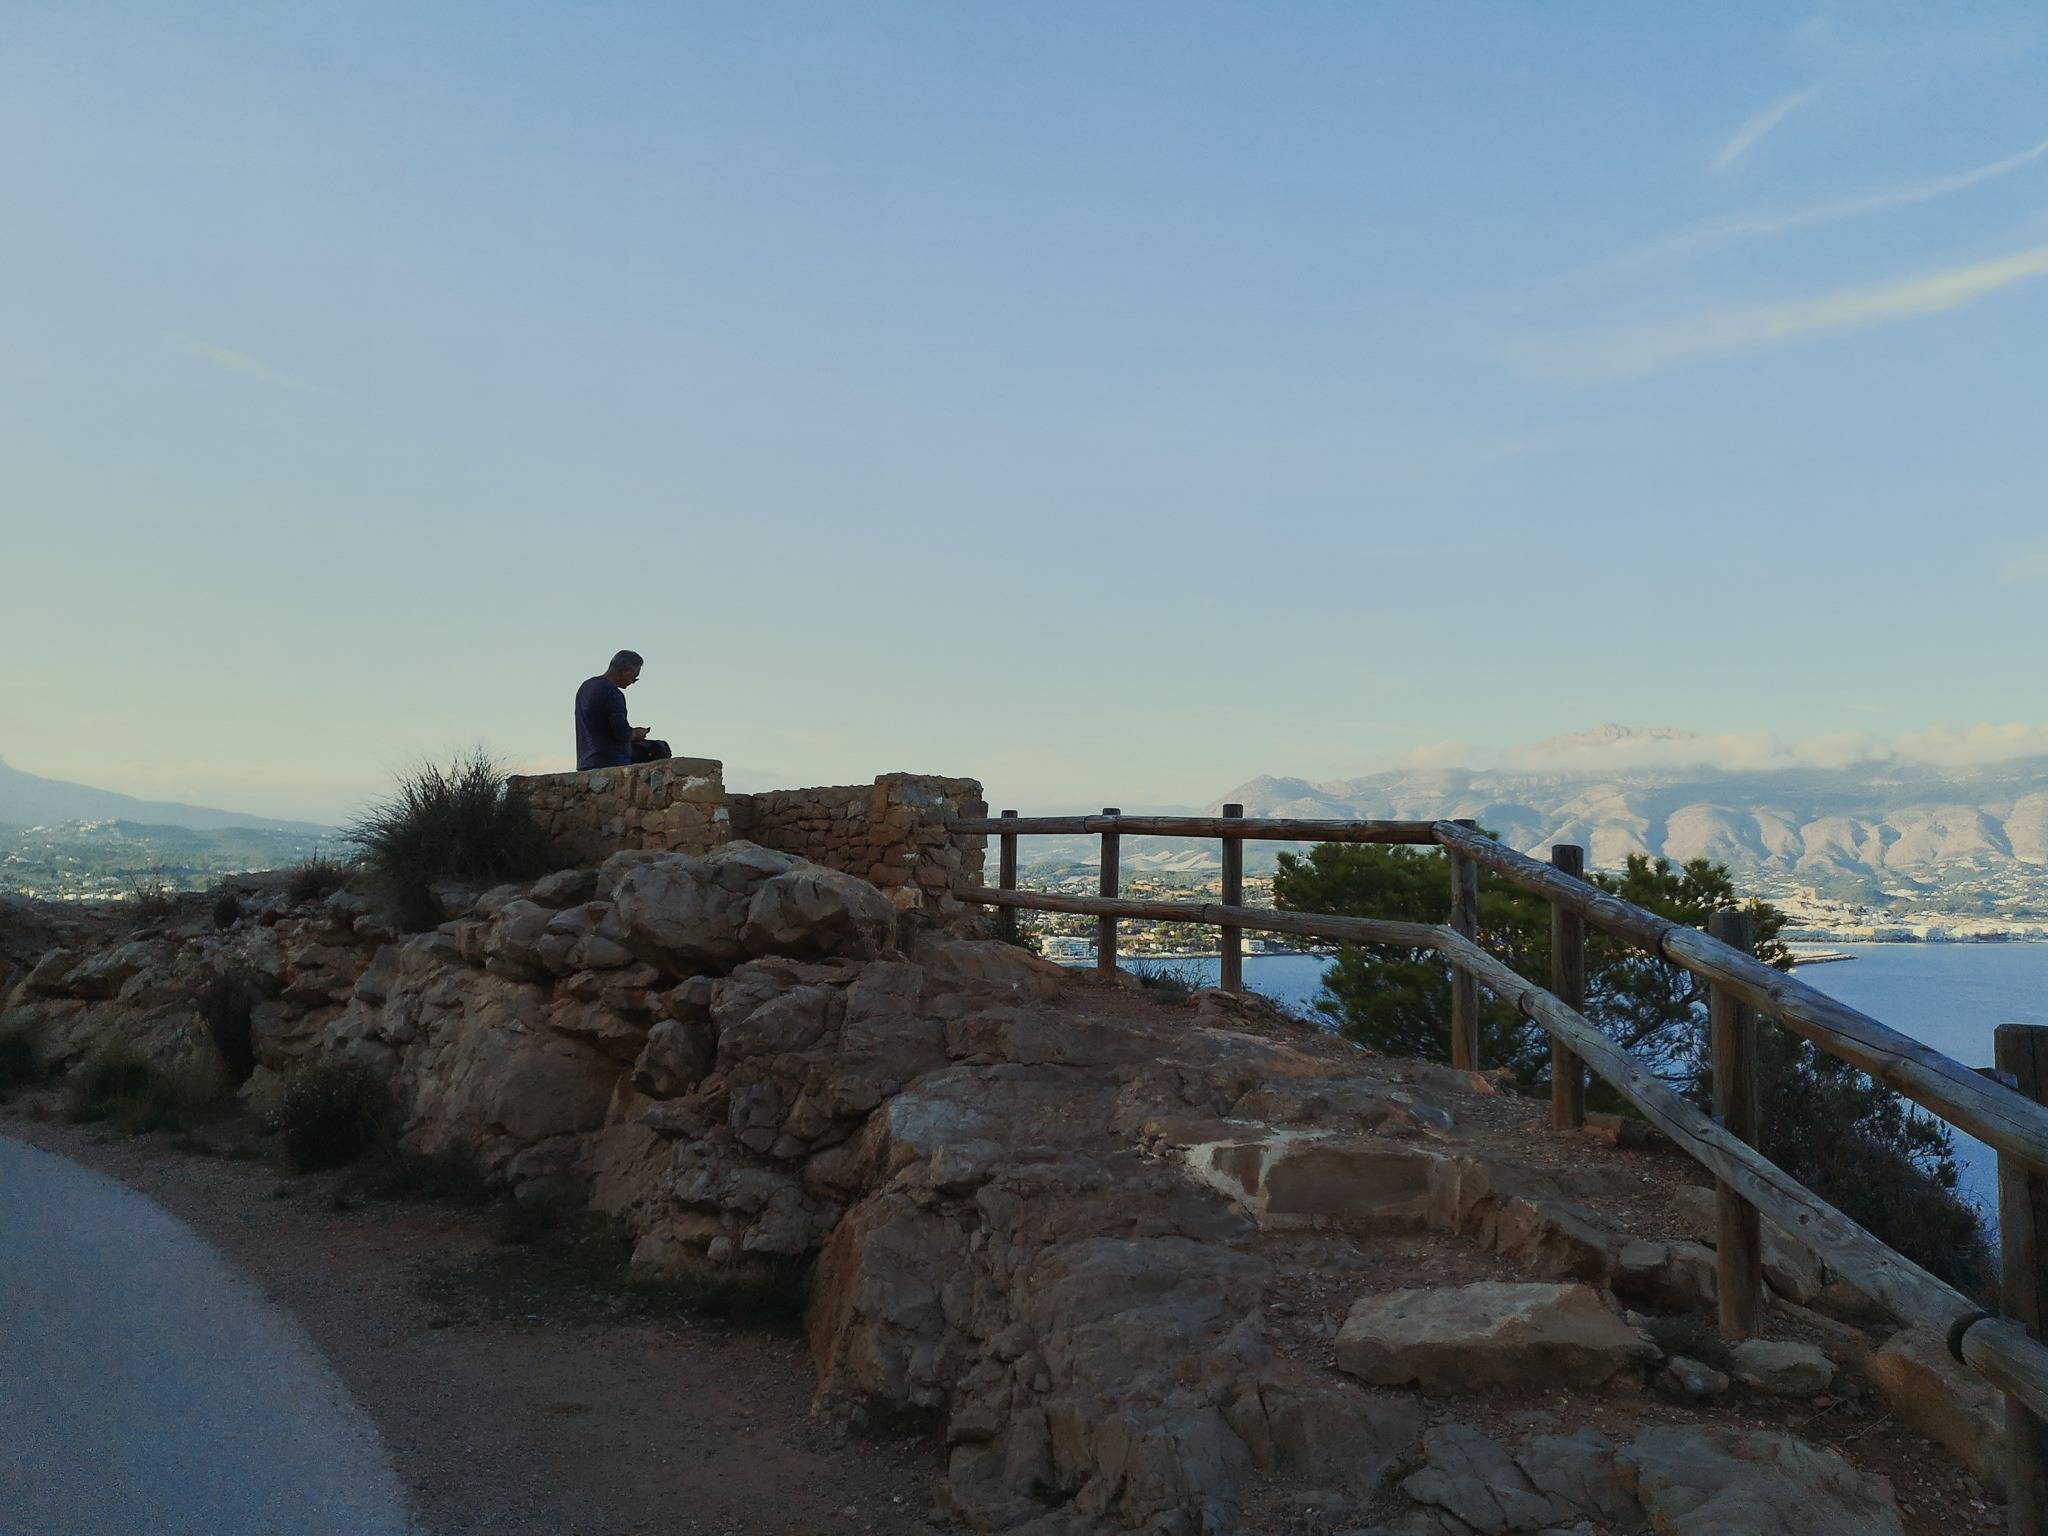 Man sitting on a rock on Camino del Faro. Photo by Alis Monte [CC BY-SA 4.0], via Connecting the Dots